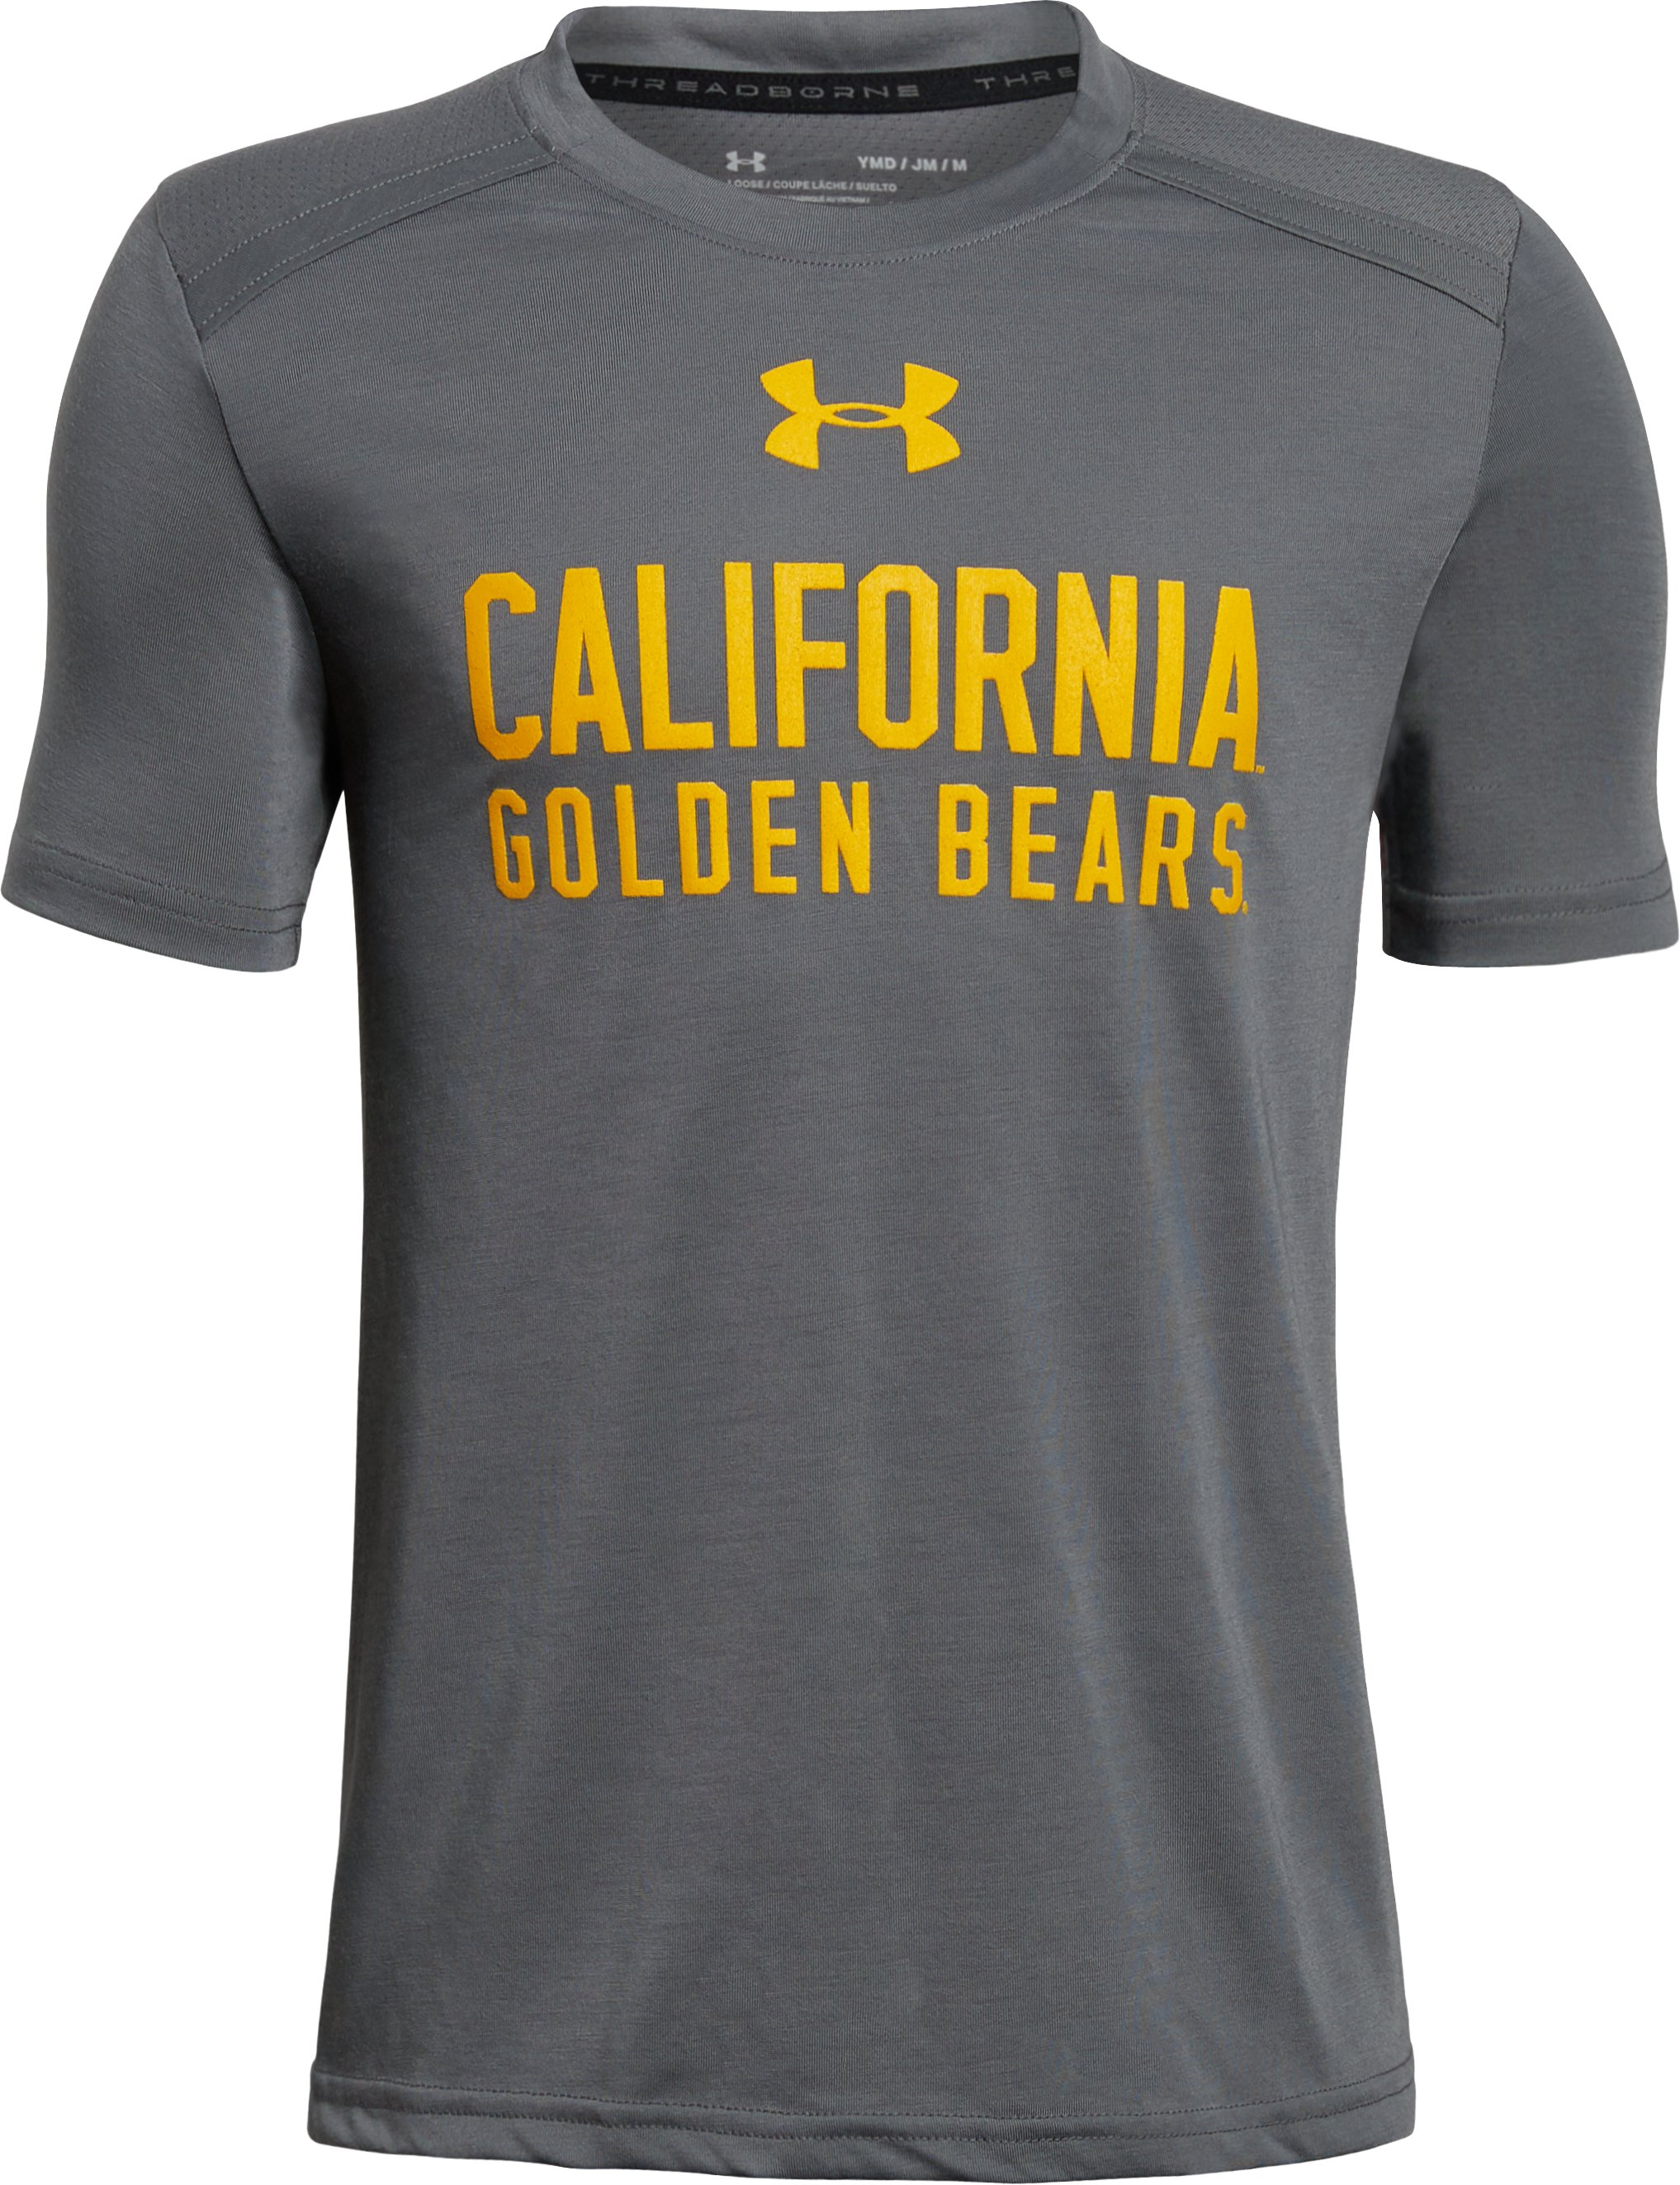 Boys' Cal Bears T-Shirt, Graphite,